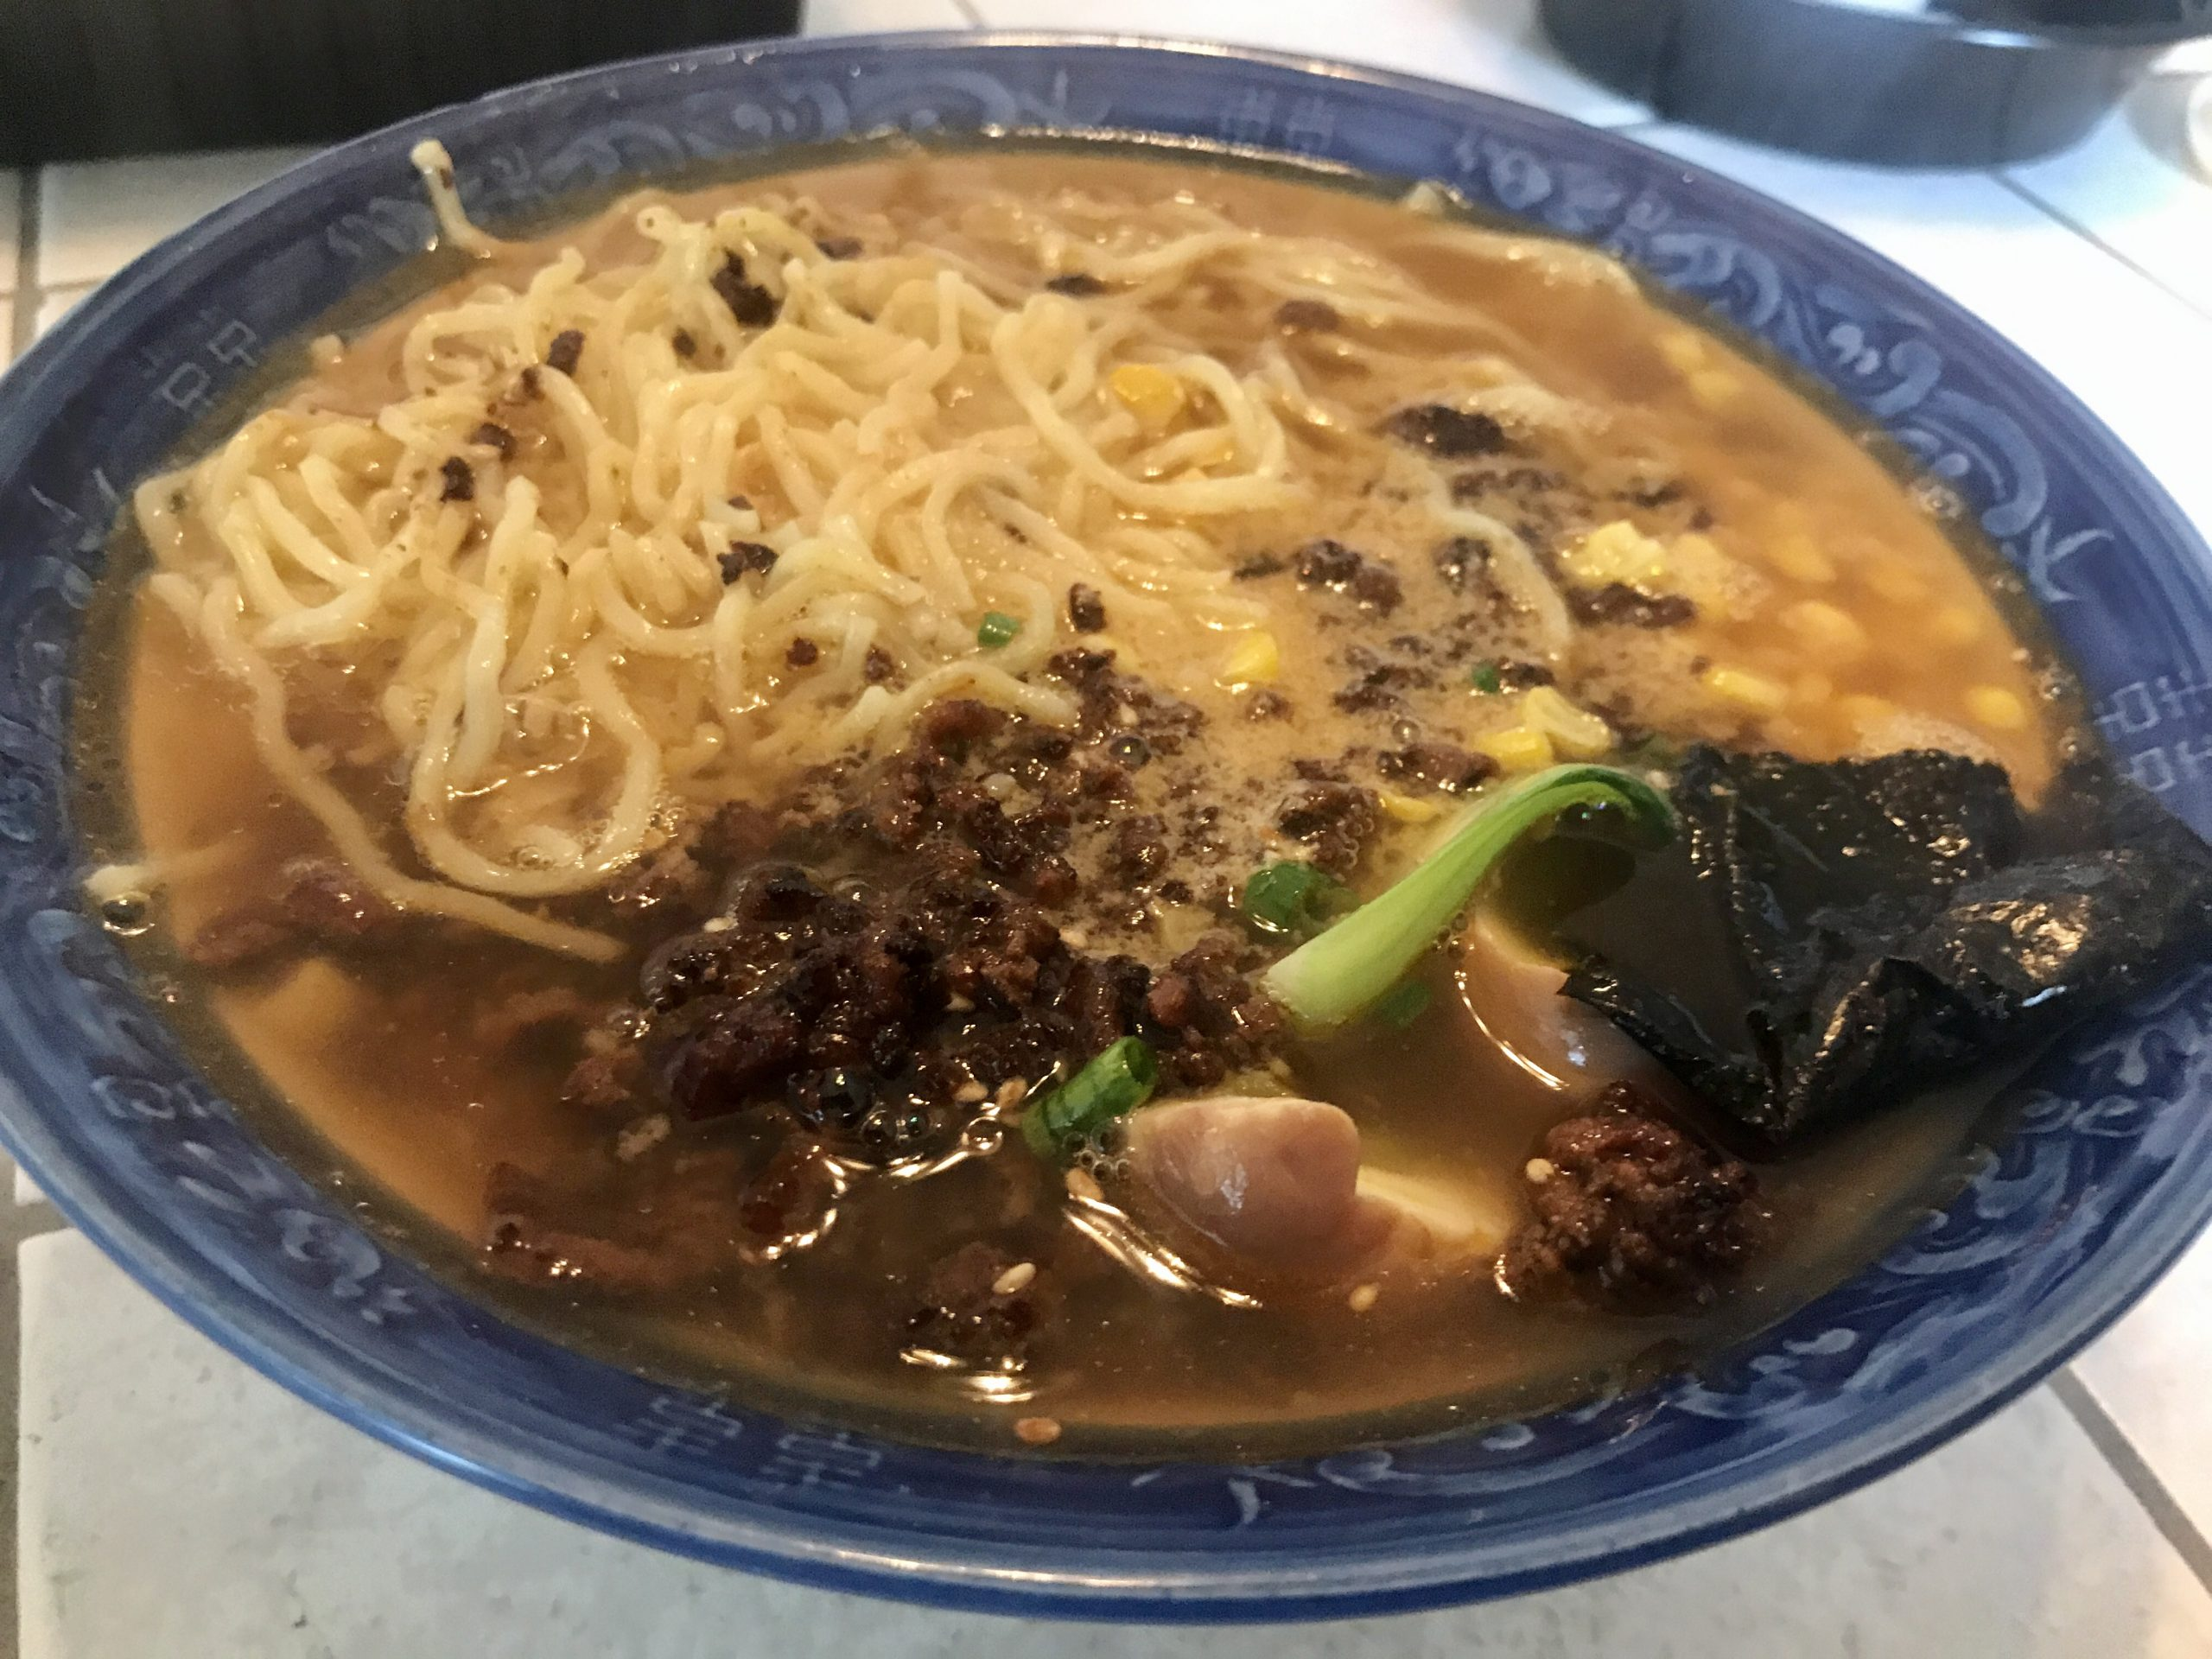 Ramen at Hi Dumplings in Kennewick – October 14 2020